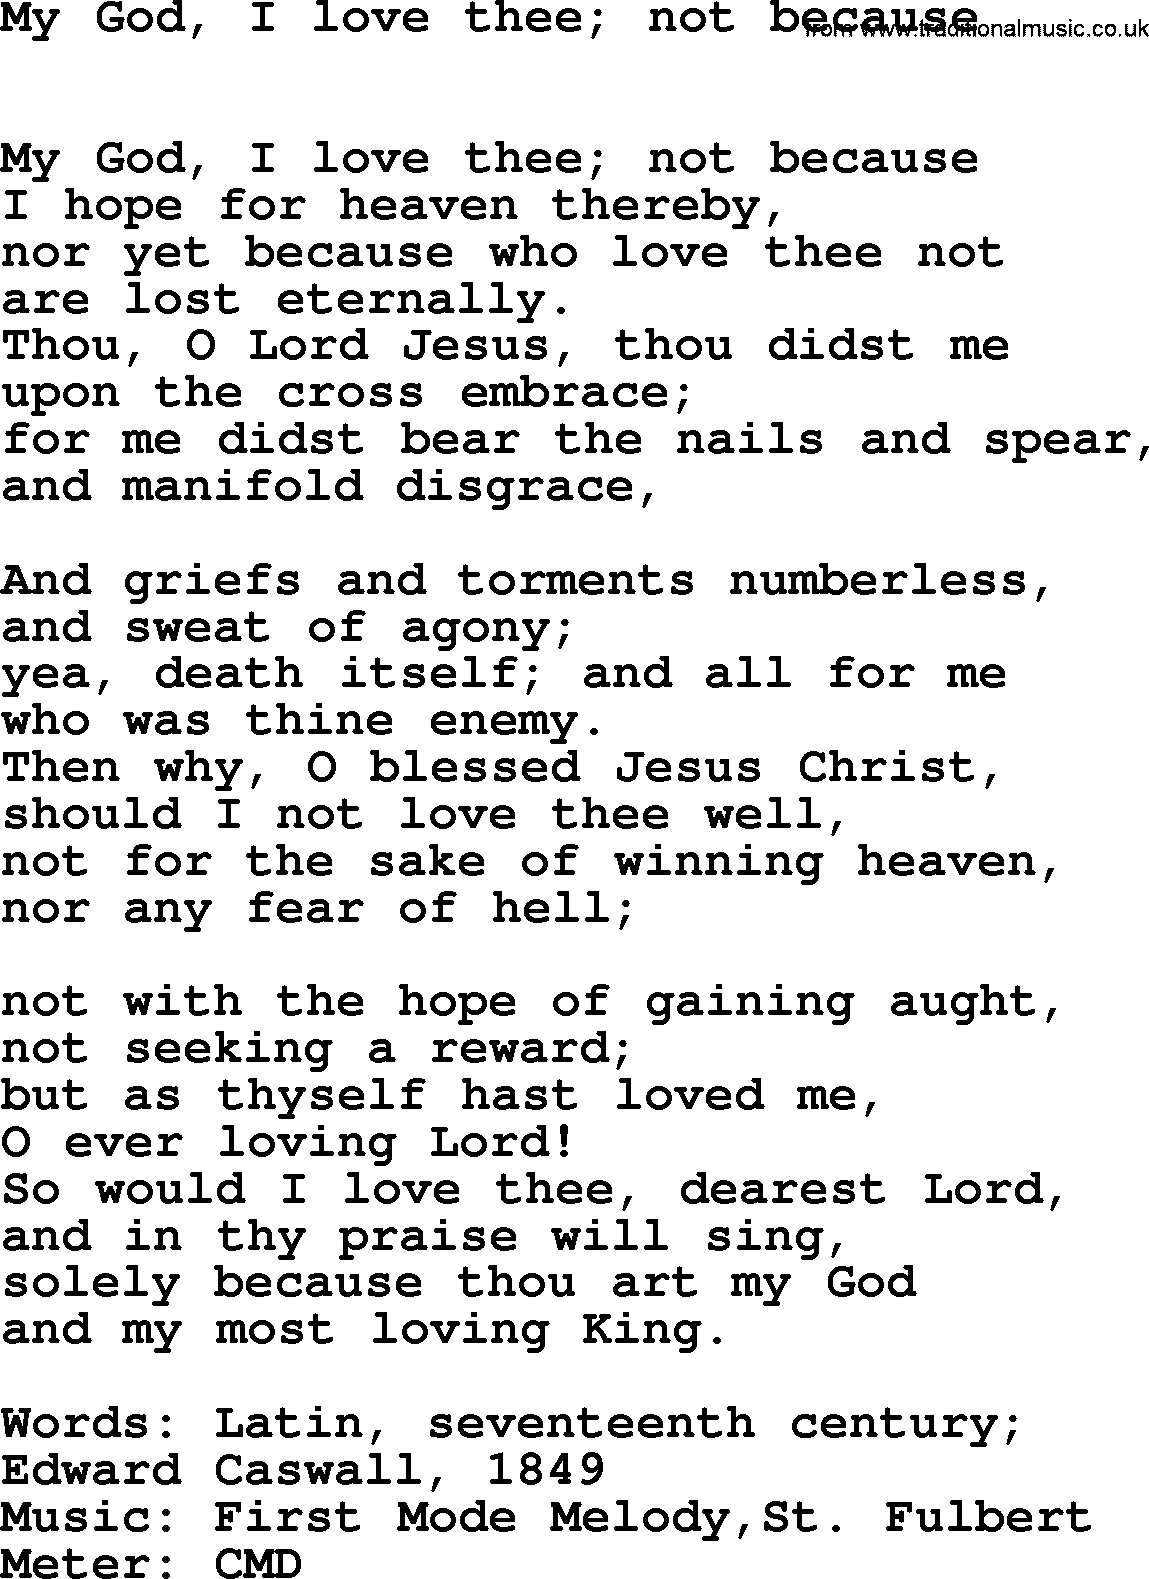 Lent Hymns, Song: My God, I Love Thee; Not Because ...